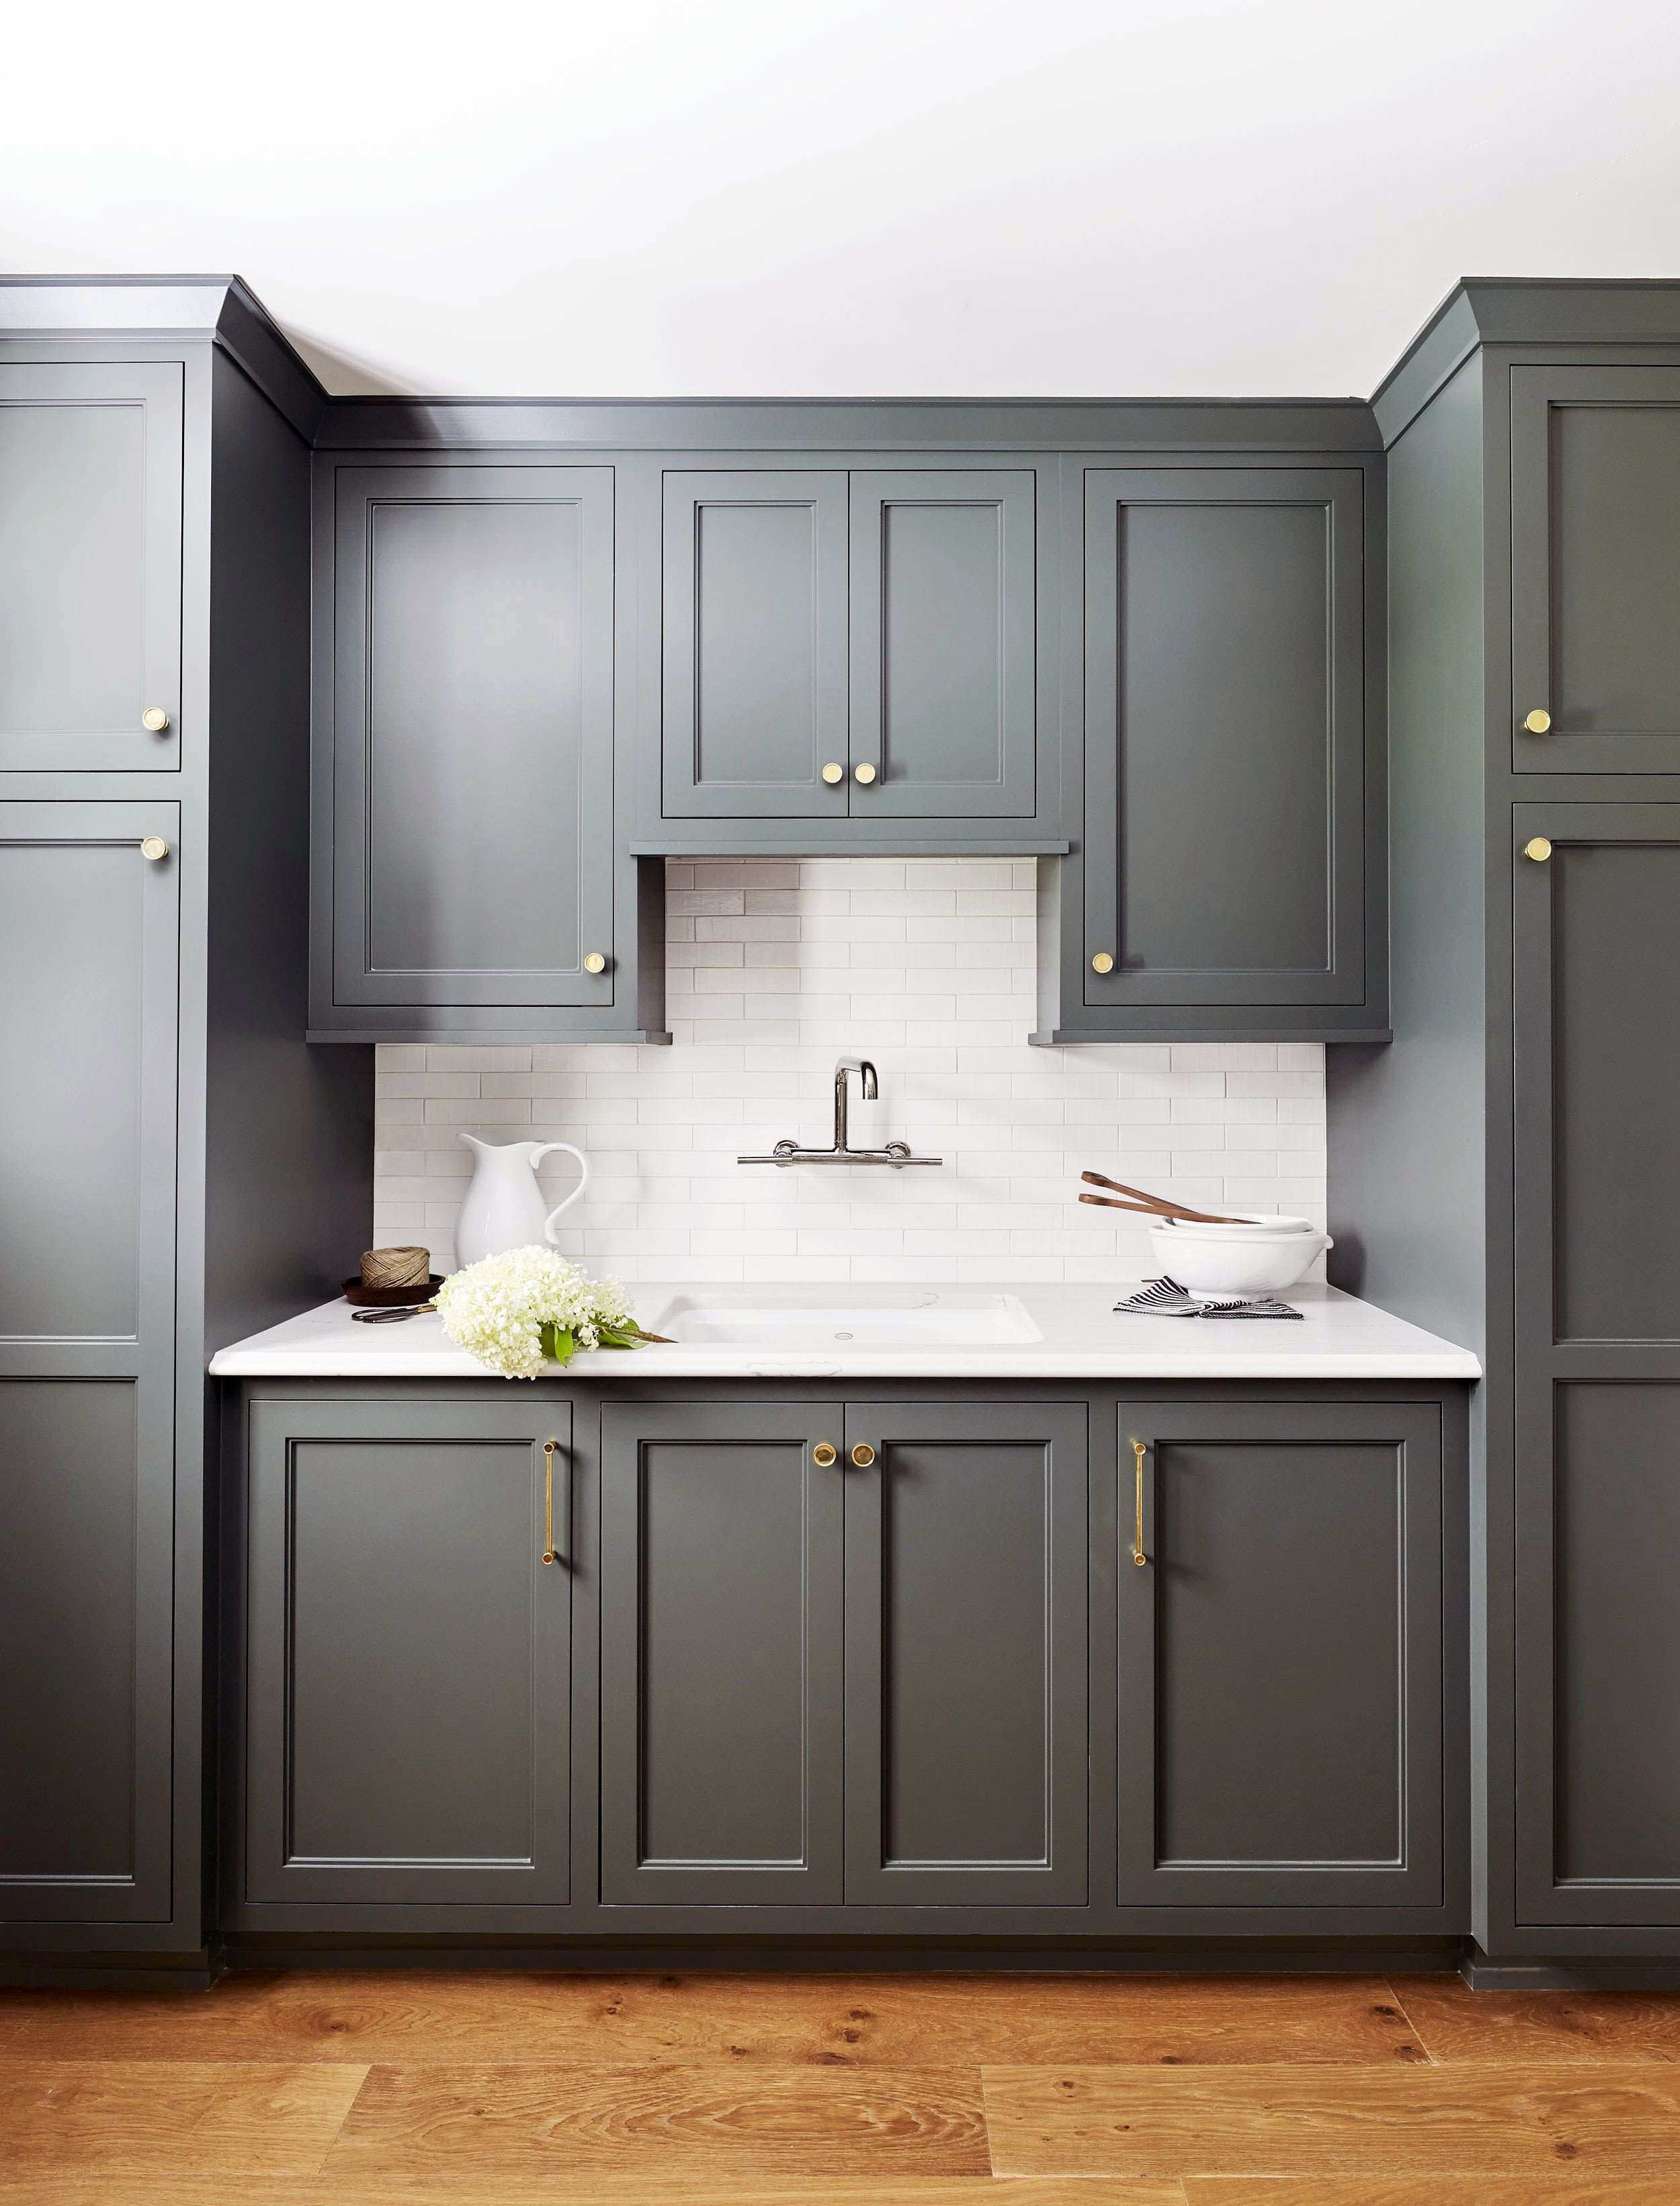 Kitchen Cabinet Ideas Replacing Your Kitchen Area Closets Are A Huge Investment Below S Our Top Cook Kitchen Design Small Kitchen Renovation Kitchen Remodel